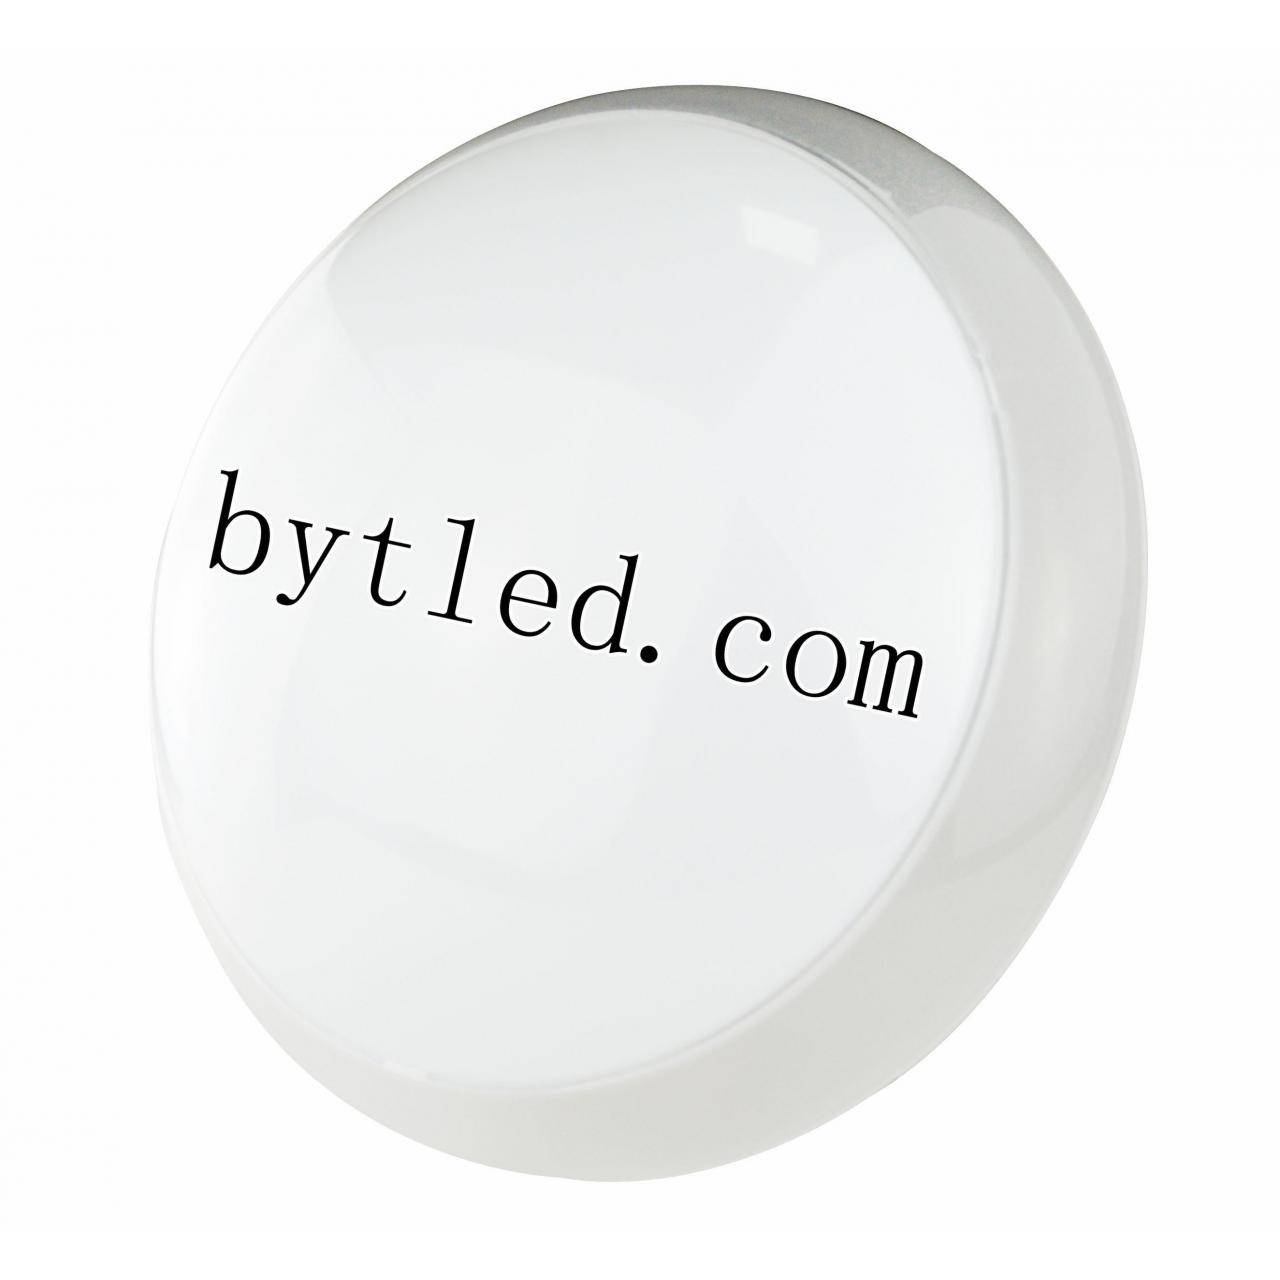 BYC-6-18 LED ceiling lamp